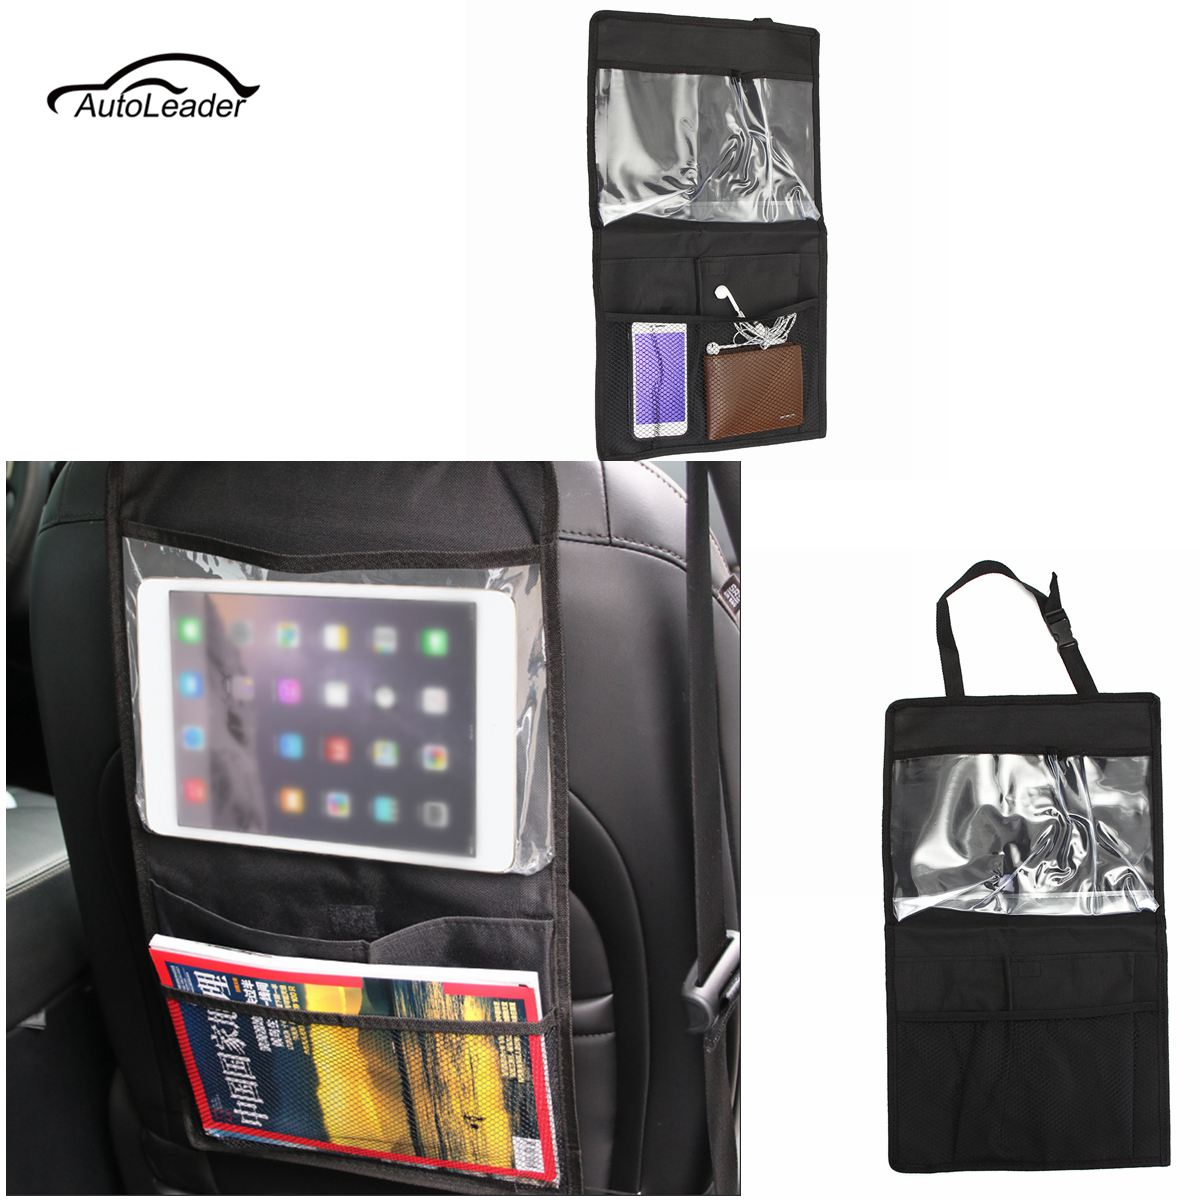 Auto Organizer Tablet Us 4 02 6 Off Auto Car Seat Back Organizer Storage Box Tablet Holder Stowing Tidying Storage Hanging Bag Travel Multi Pocket Organiser In Stowing